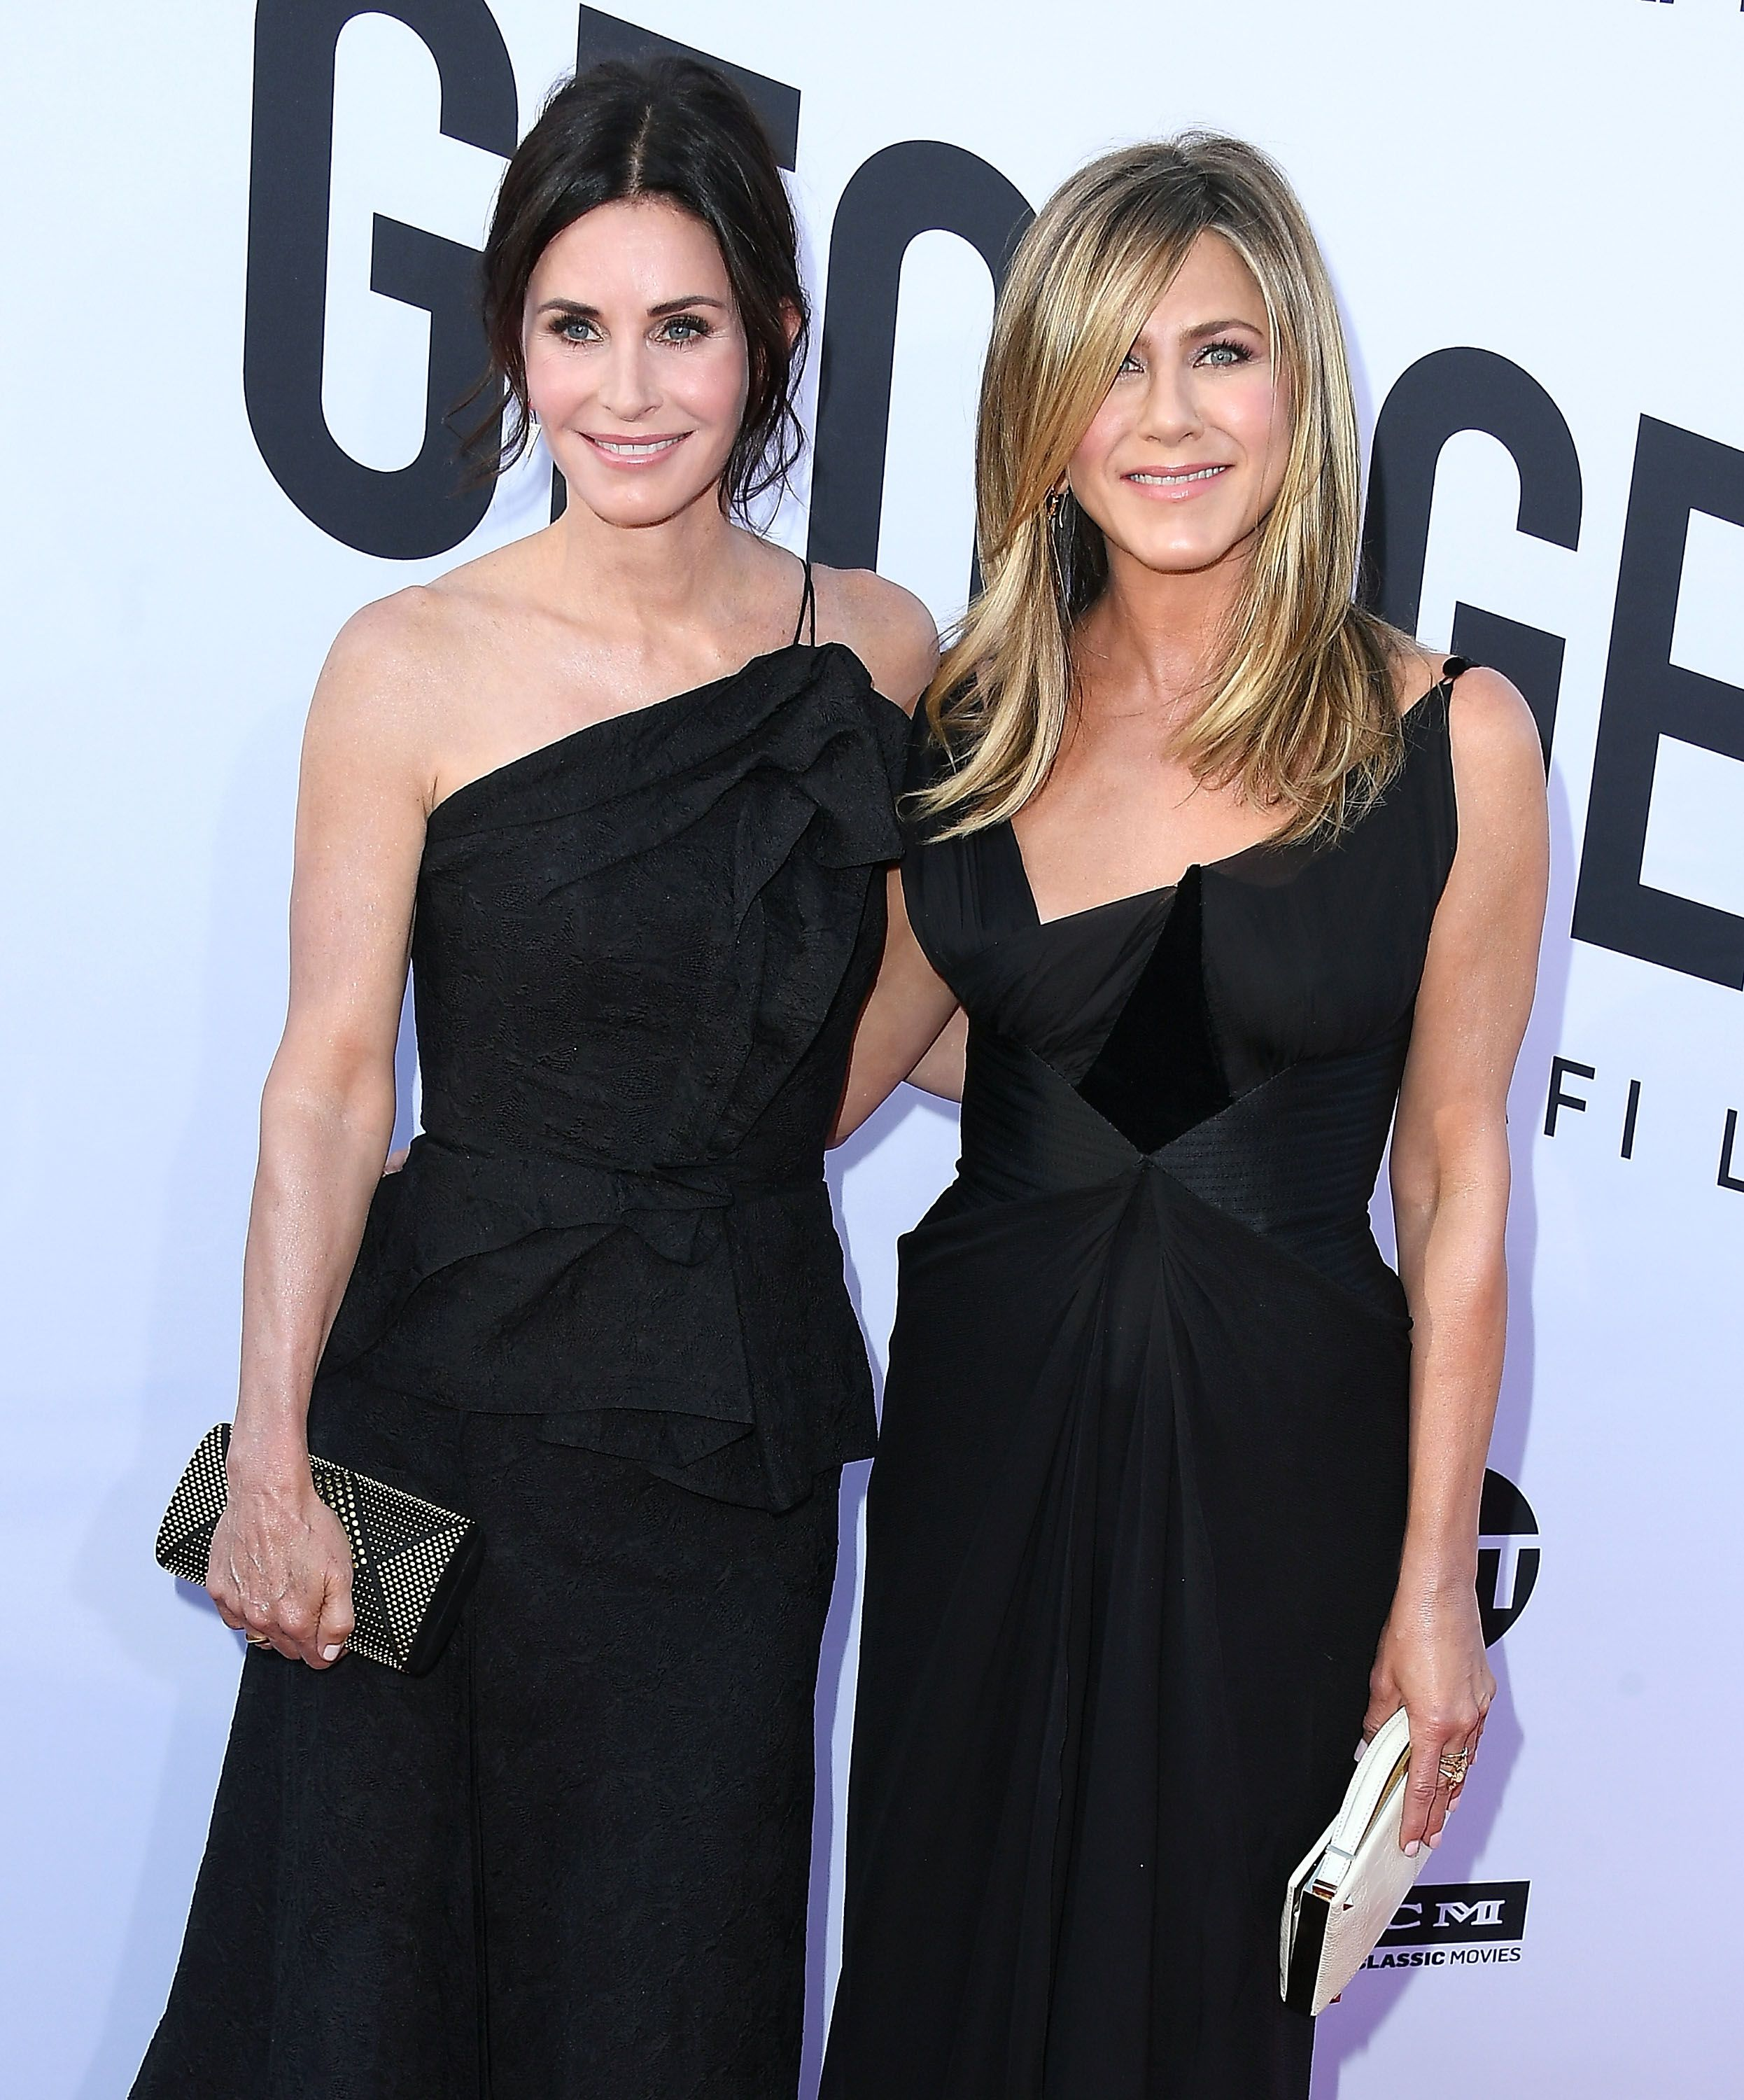 Jennifer Aniston & Courteney Cox The two Friends have made it last way longer than the show did! They met on the set of the hit '90s comedy and have been close ever since, with 20 years of friendship under their belts.